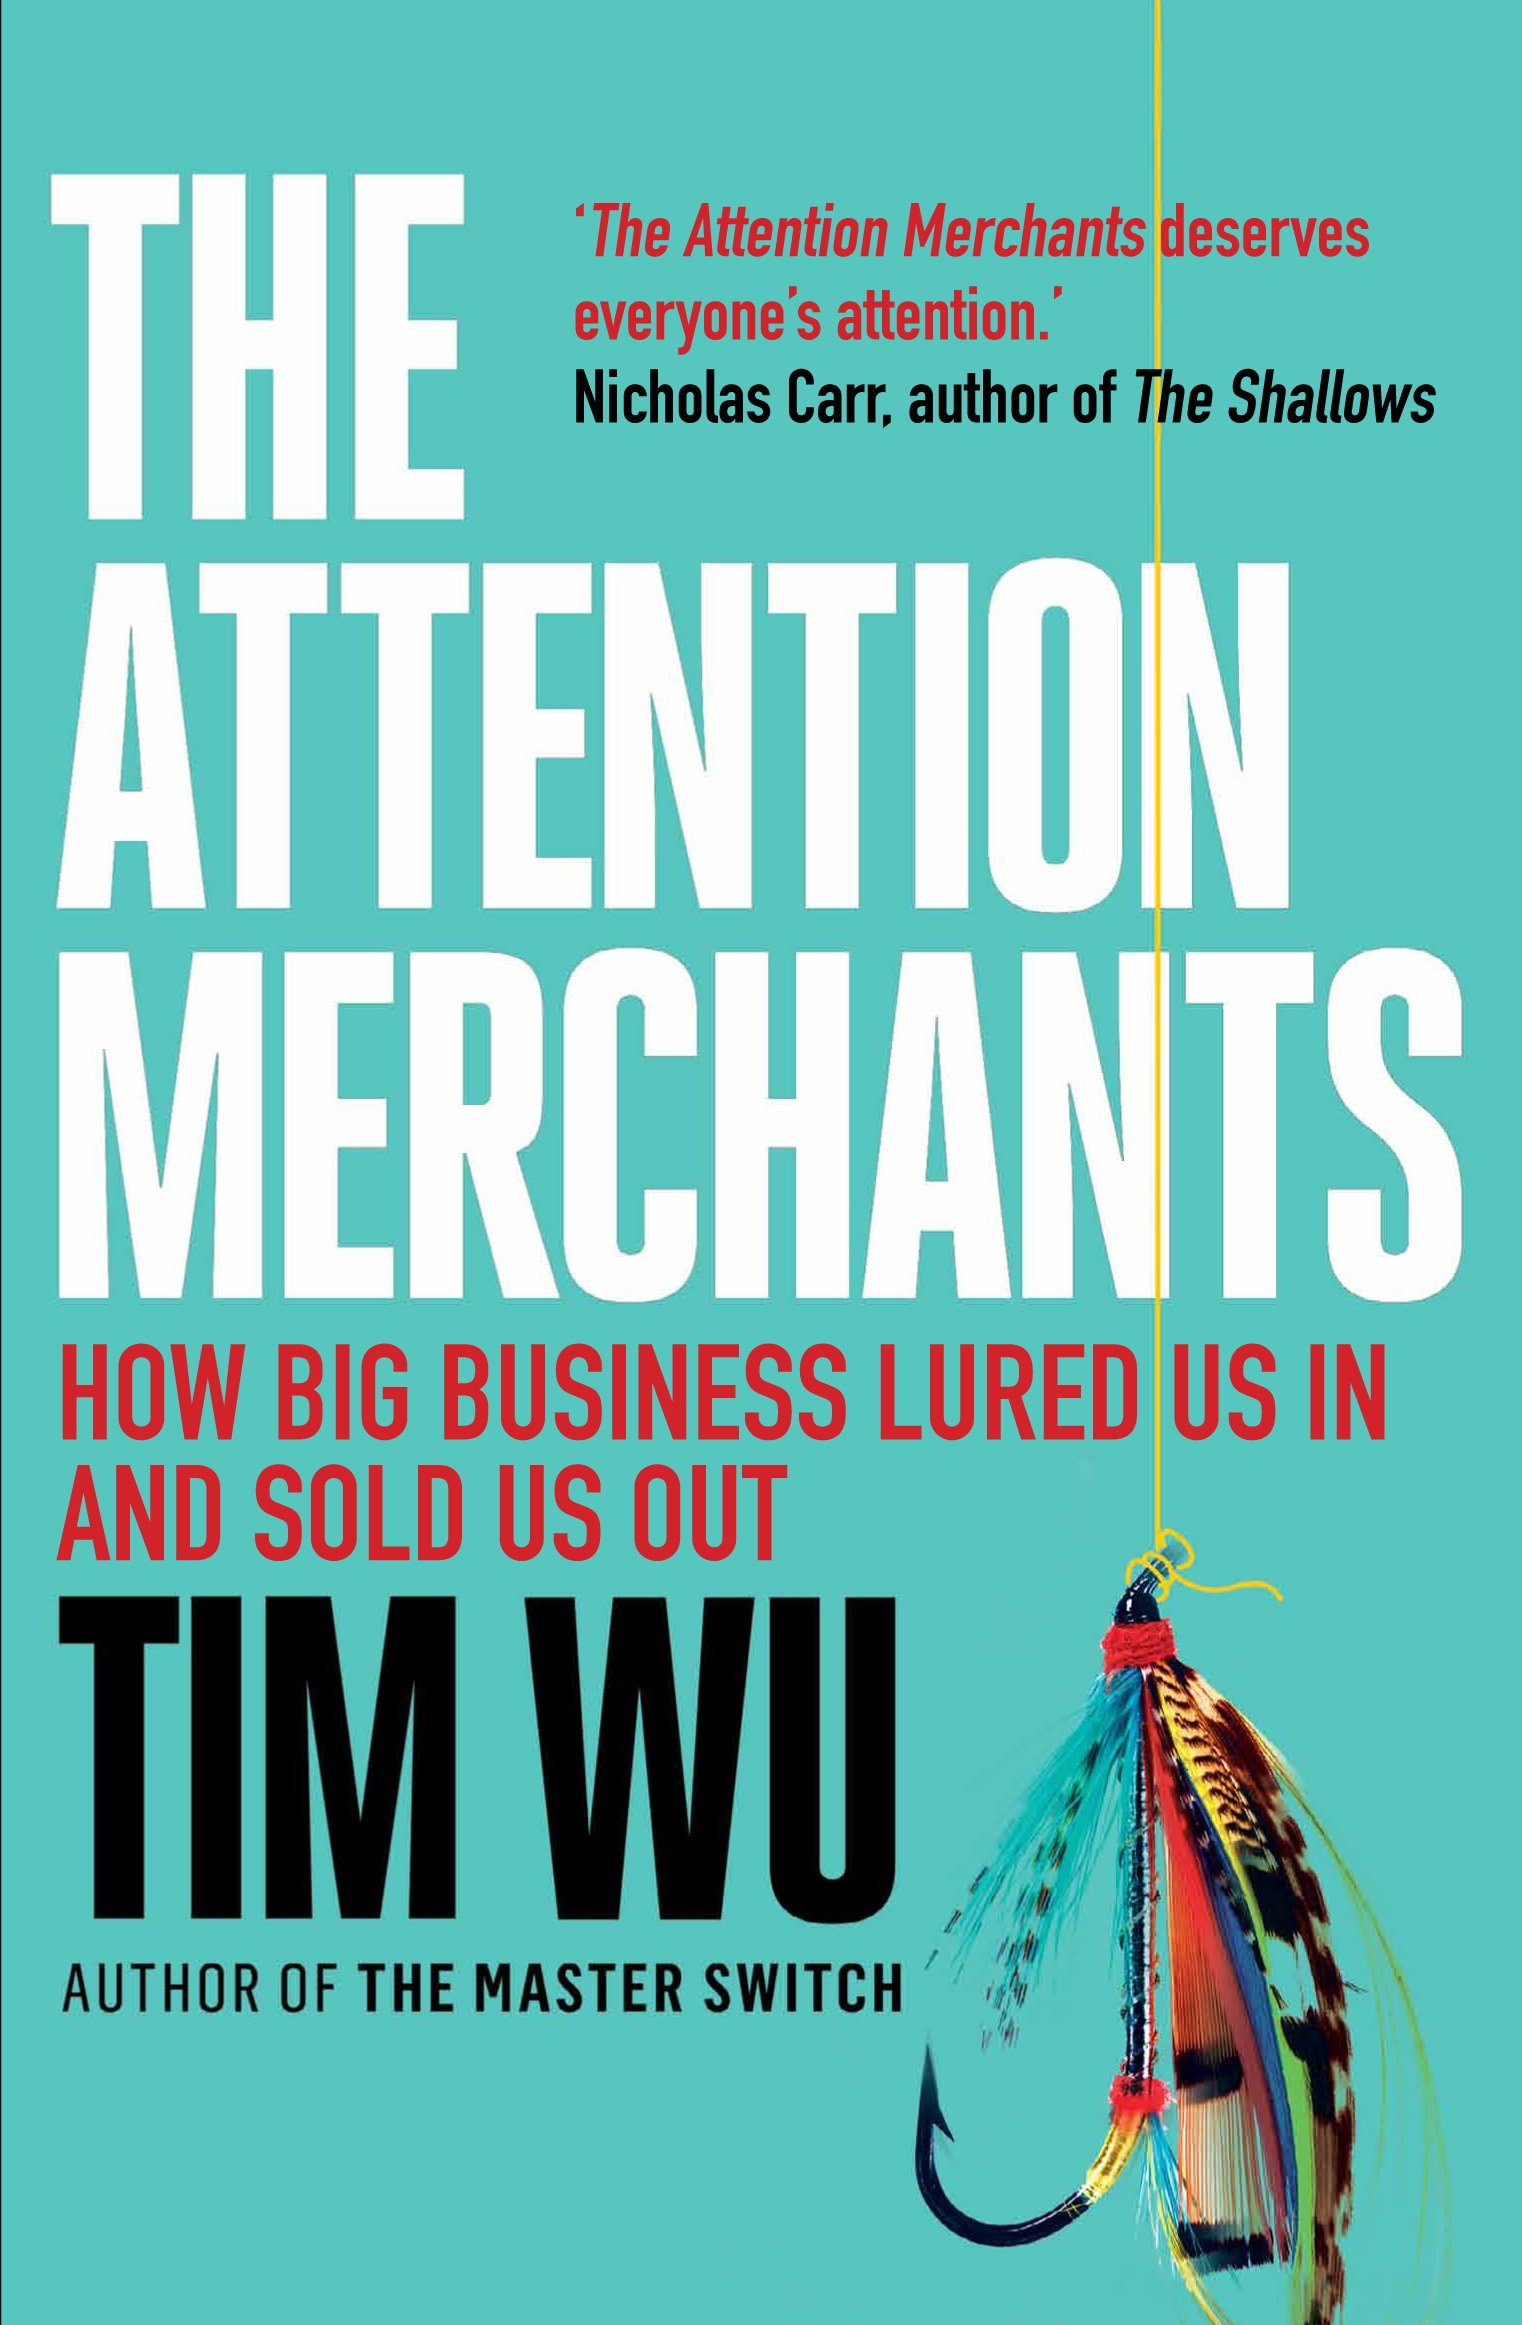 The Attention Merchants (Tim Wu)